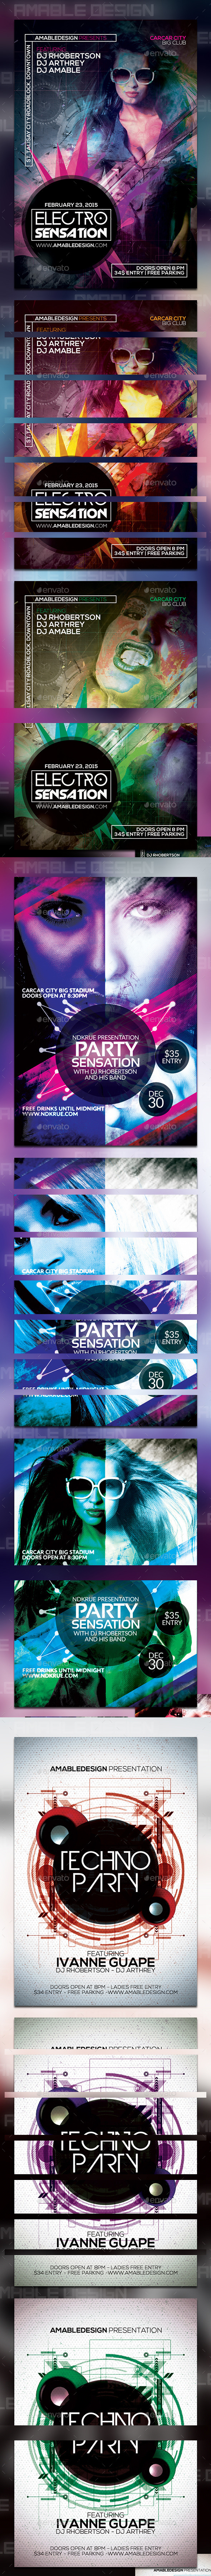 GraphicRiver 3 PSD Party Flyer Bunde 10246353